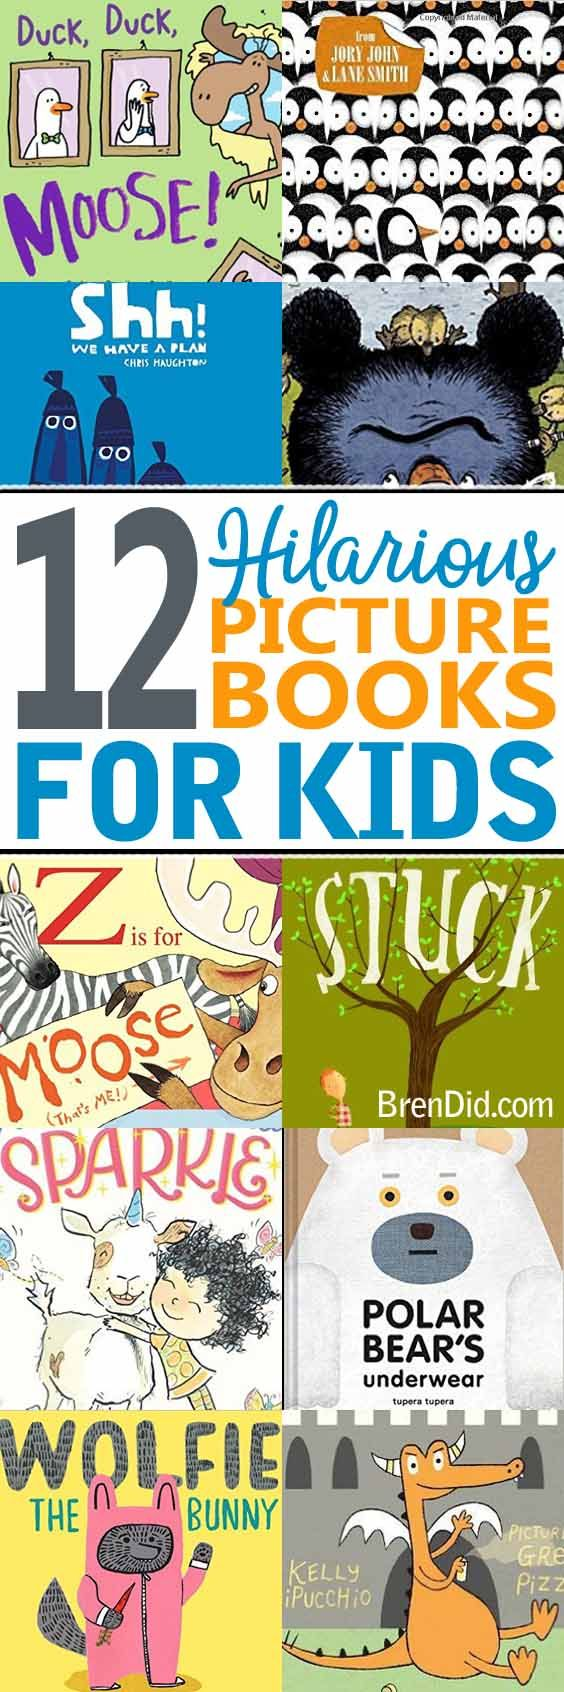 Hilarious picture books for kids, funny read aloud books for kids that will keep the whole family entertained.